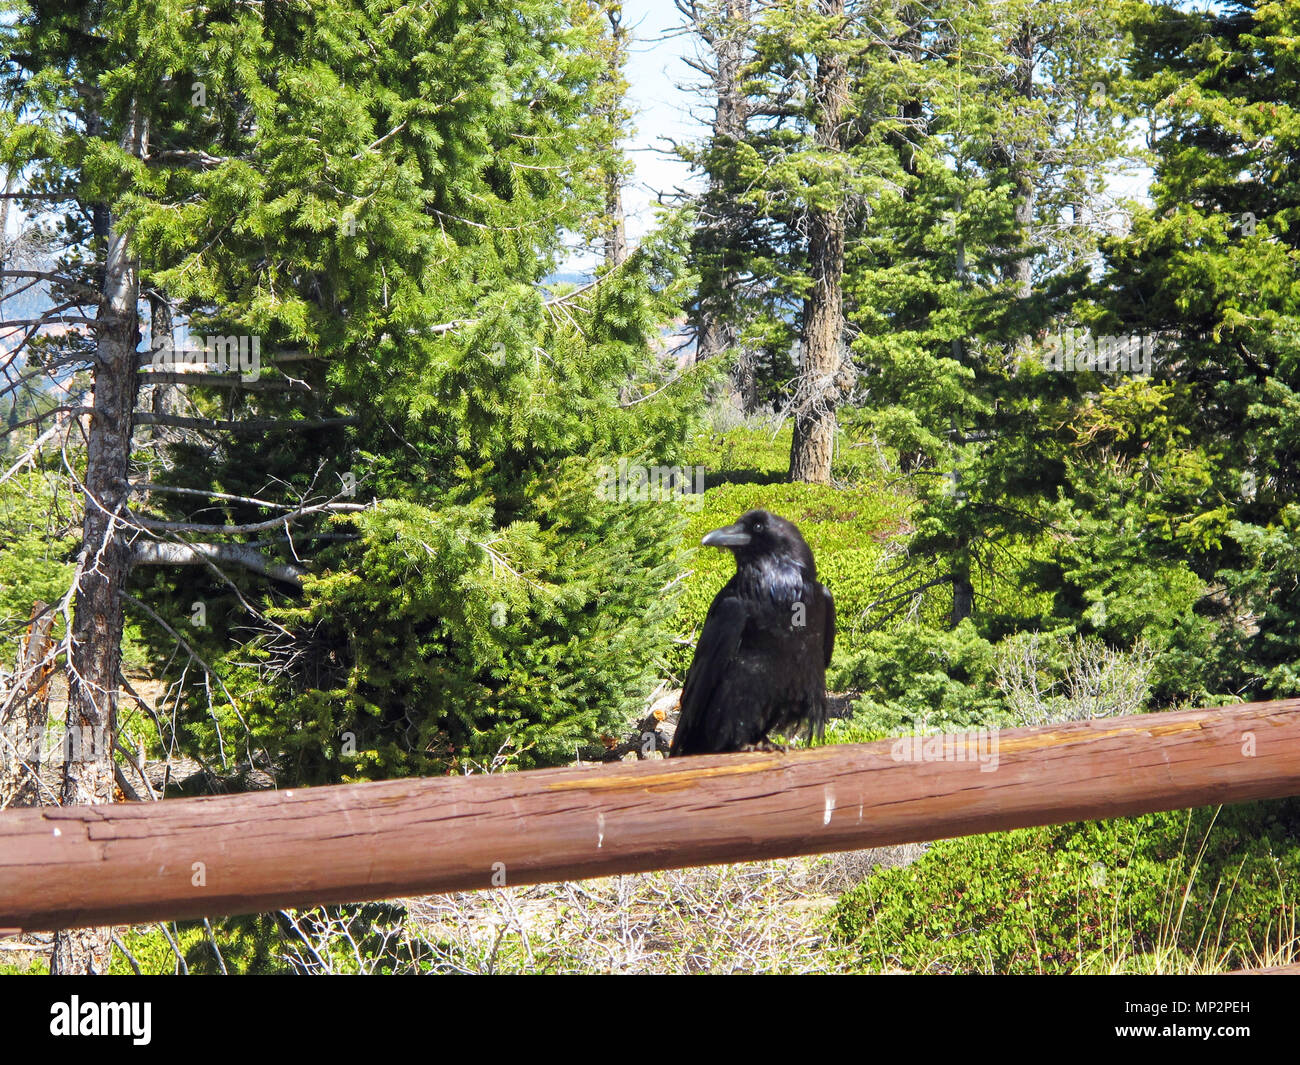 Black Raven Keeping Guard on Fence Rail with Forest Background - Stock Image